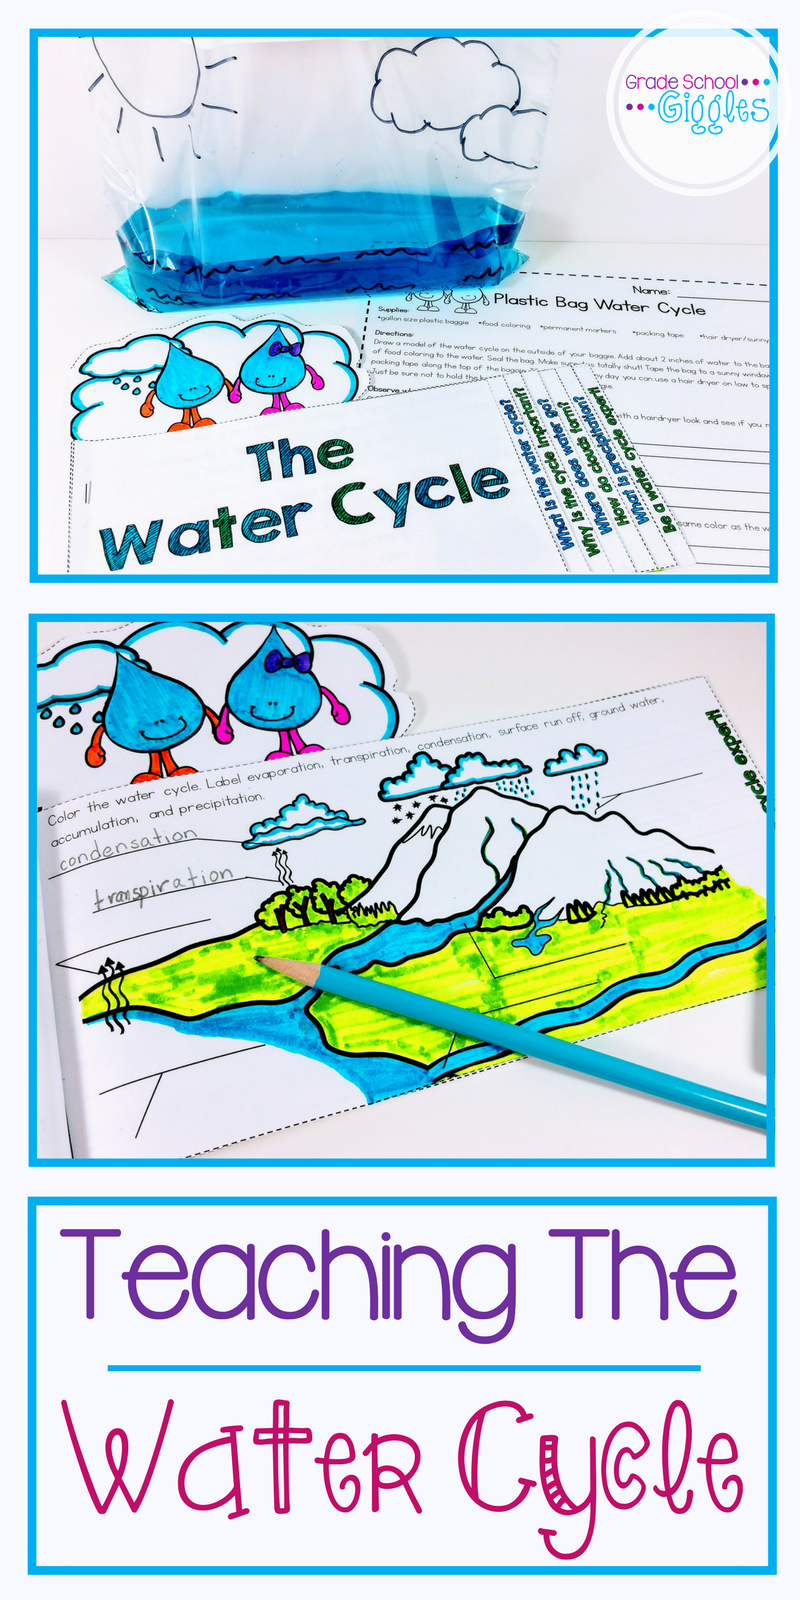 small resolution of  planning the lesson and prepping activities can take up a lot of time if you want some awesome printables for teaching kids about the water cycle